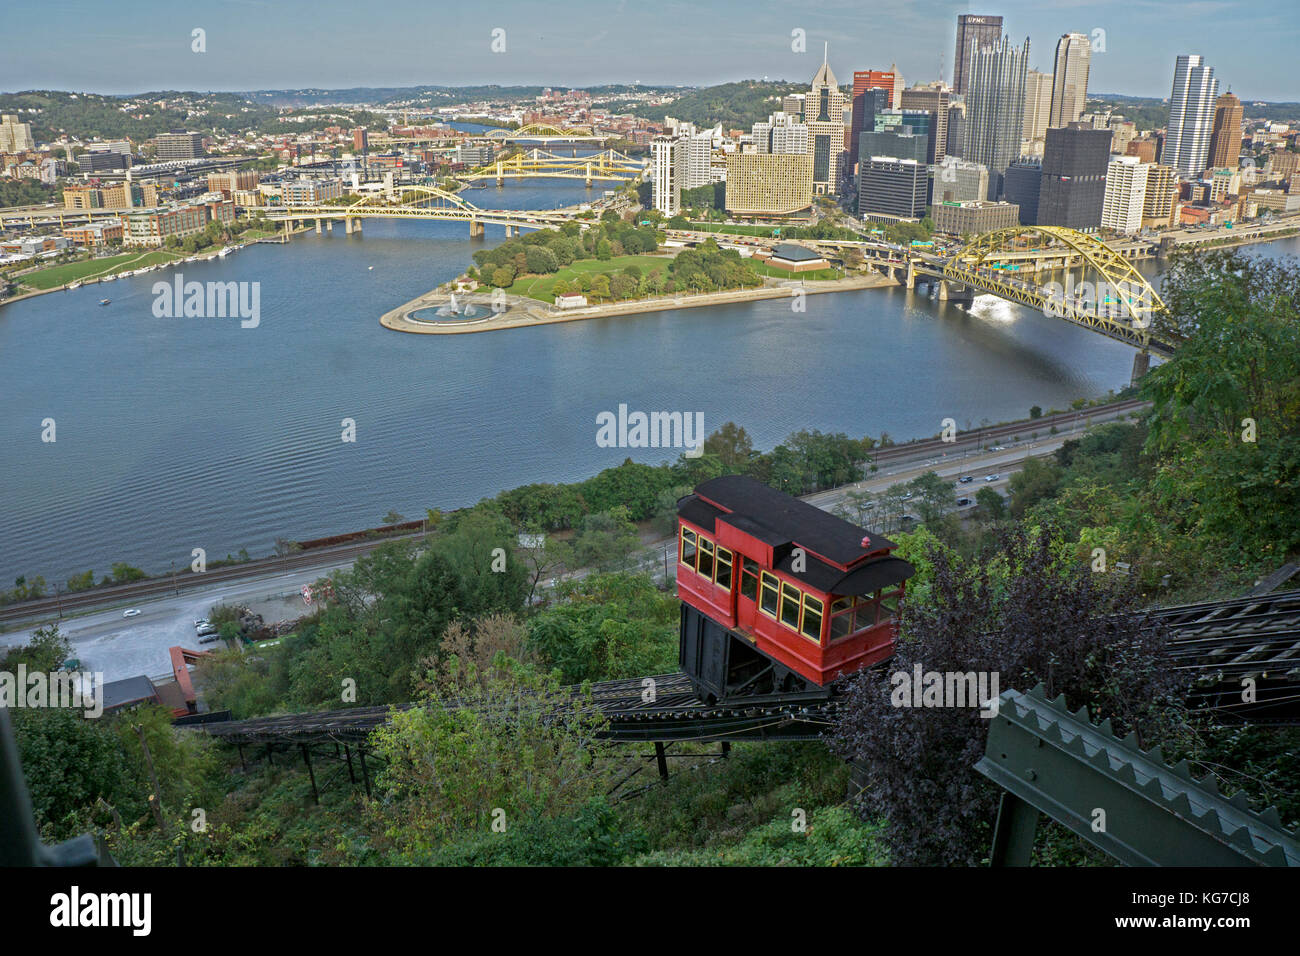 The downtown skyline of Pittsburgh, Pennsylvania as seen from Mount Washington on the city's South Side. A red - Stock Image